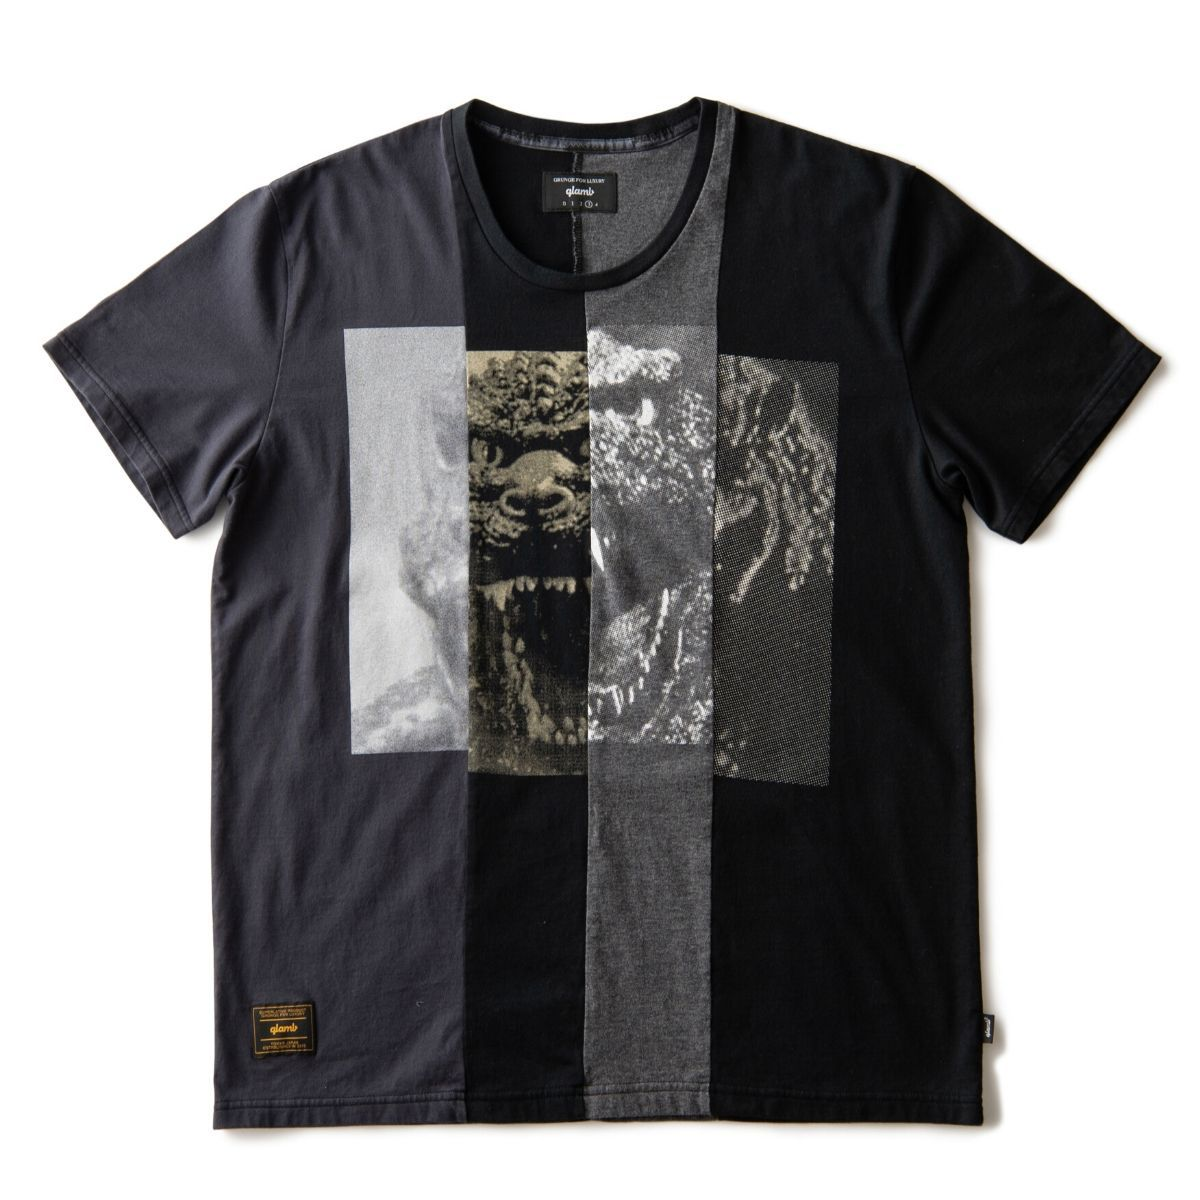 Spliced T-shirt—Godzilla/glamb Collaboration